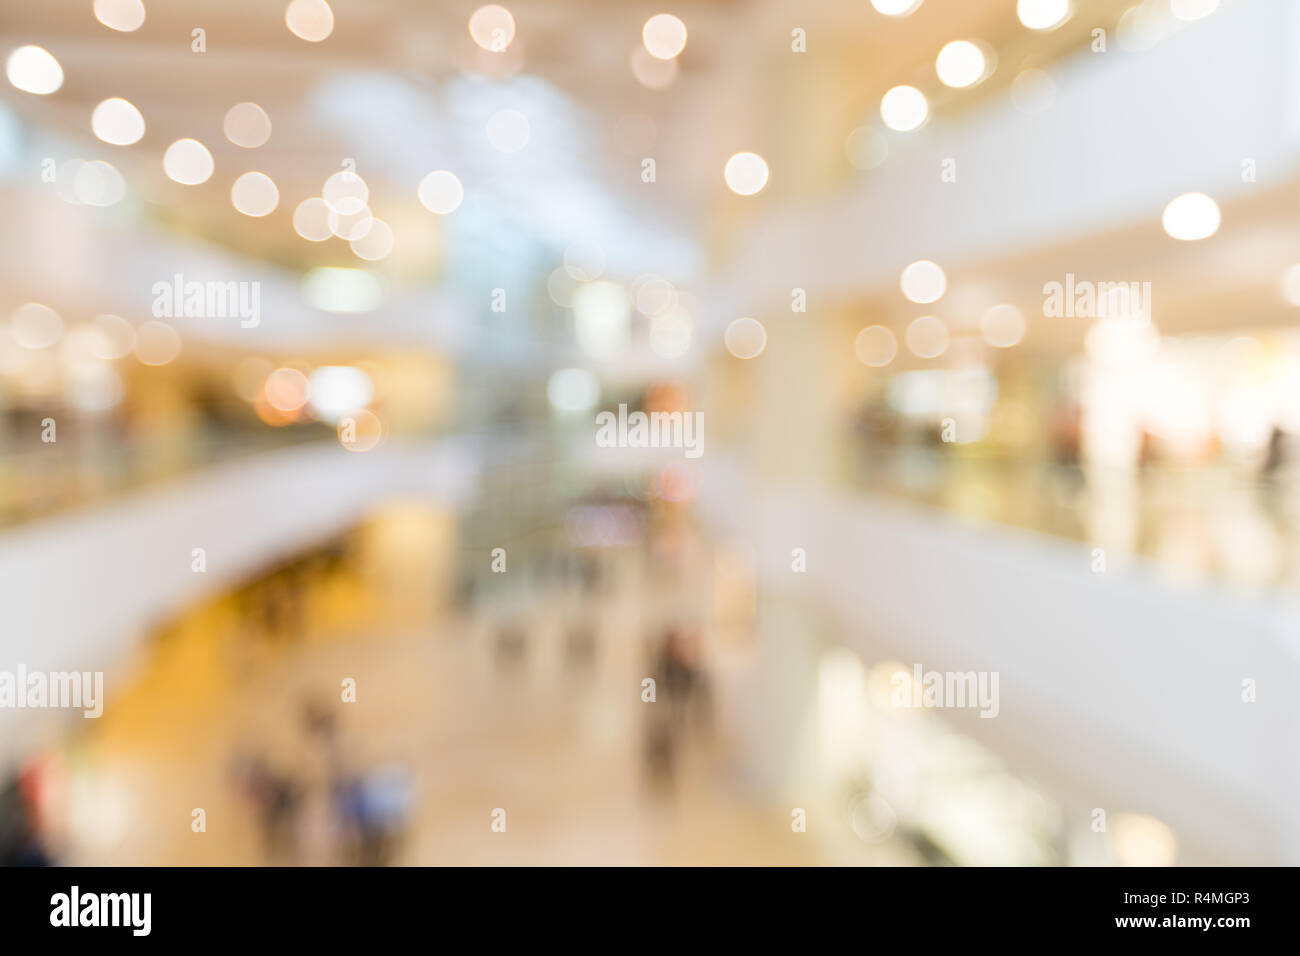 Store blur background with bokeh - Stock Image